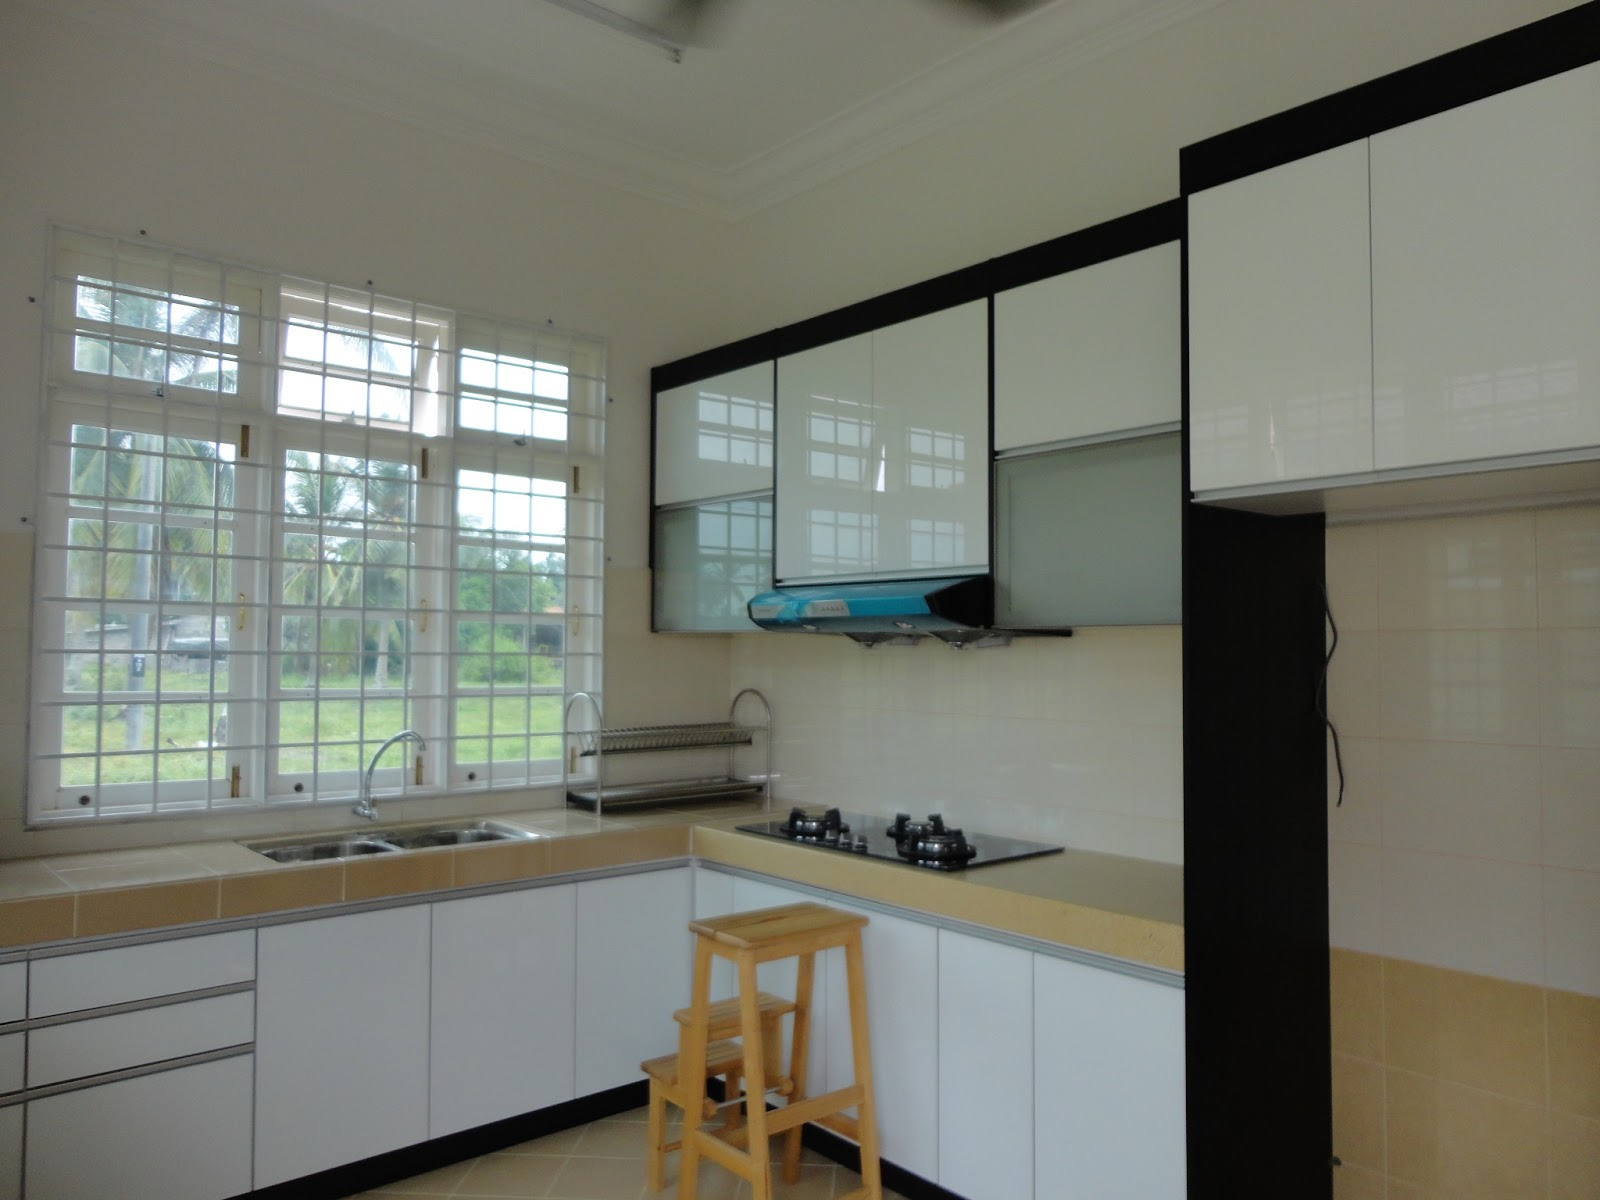 Wallpaper Dinding Dapur My First Blog!: Tips Dekorasi Ala-ala Caraku!